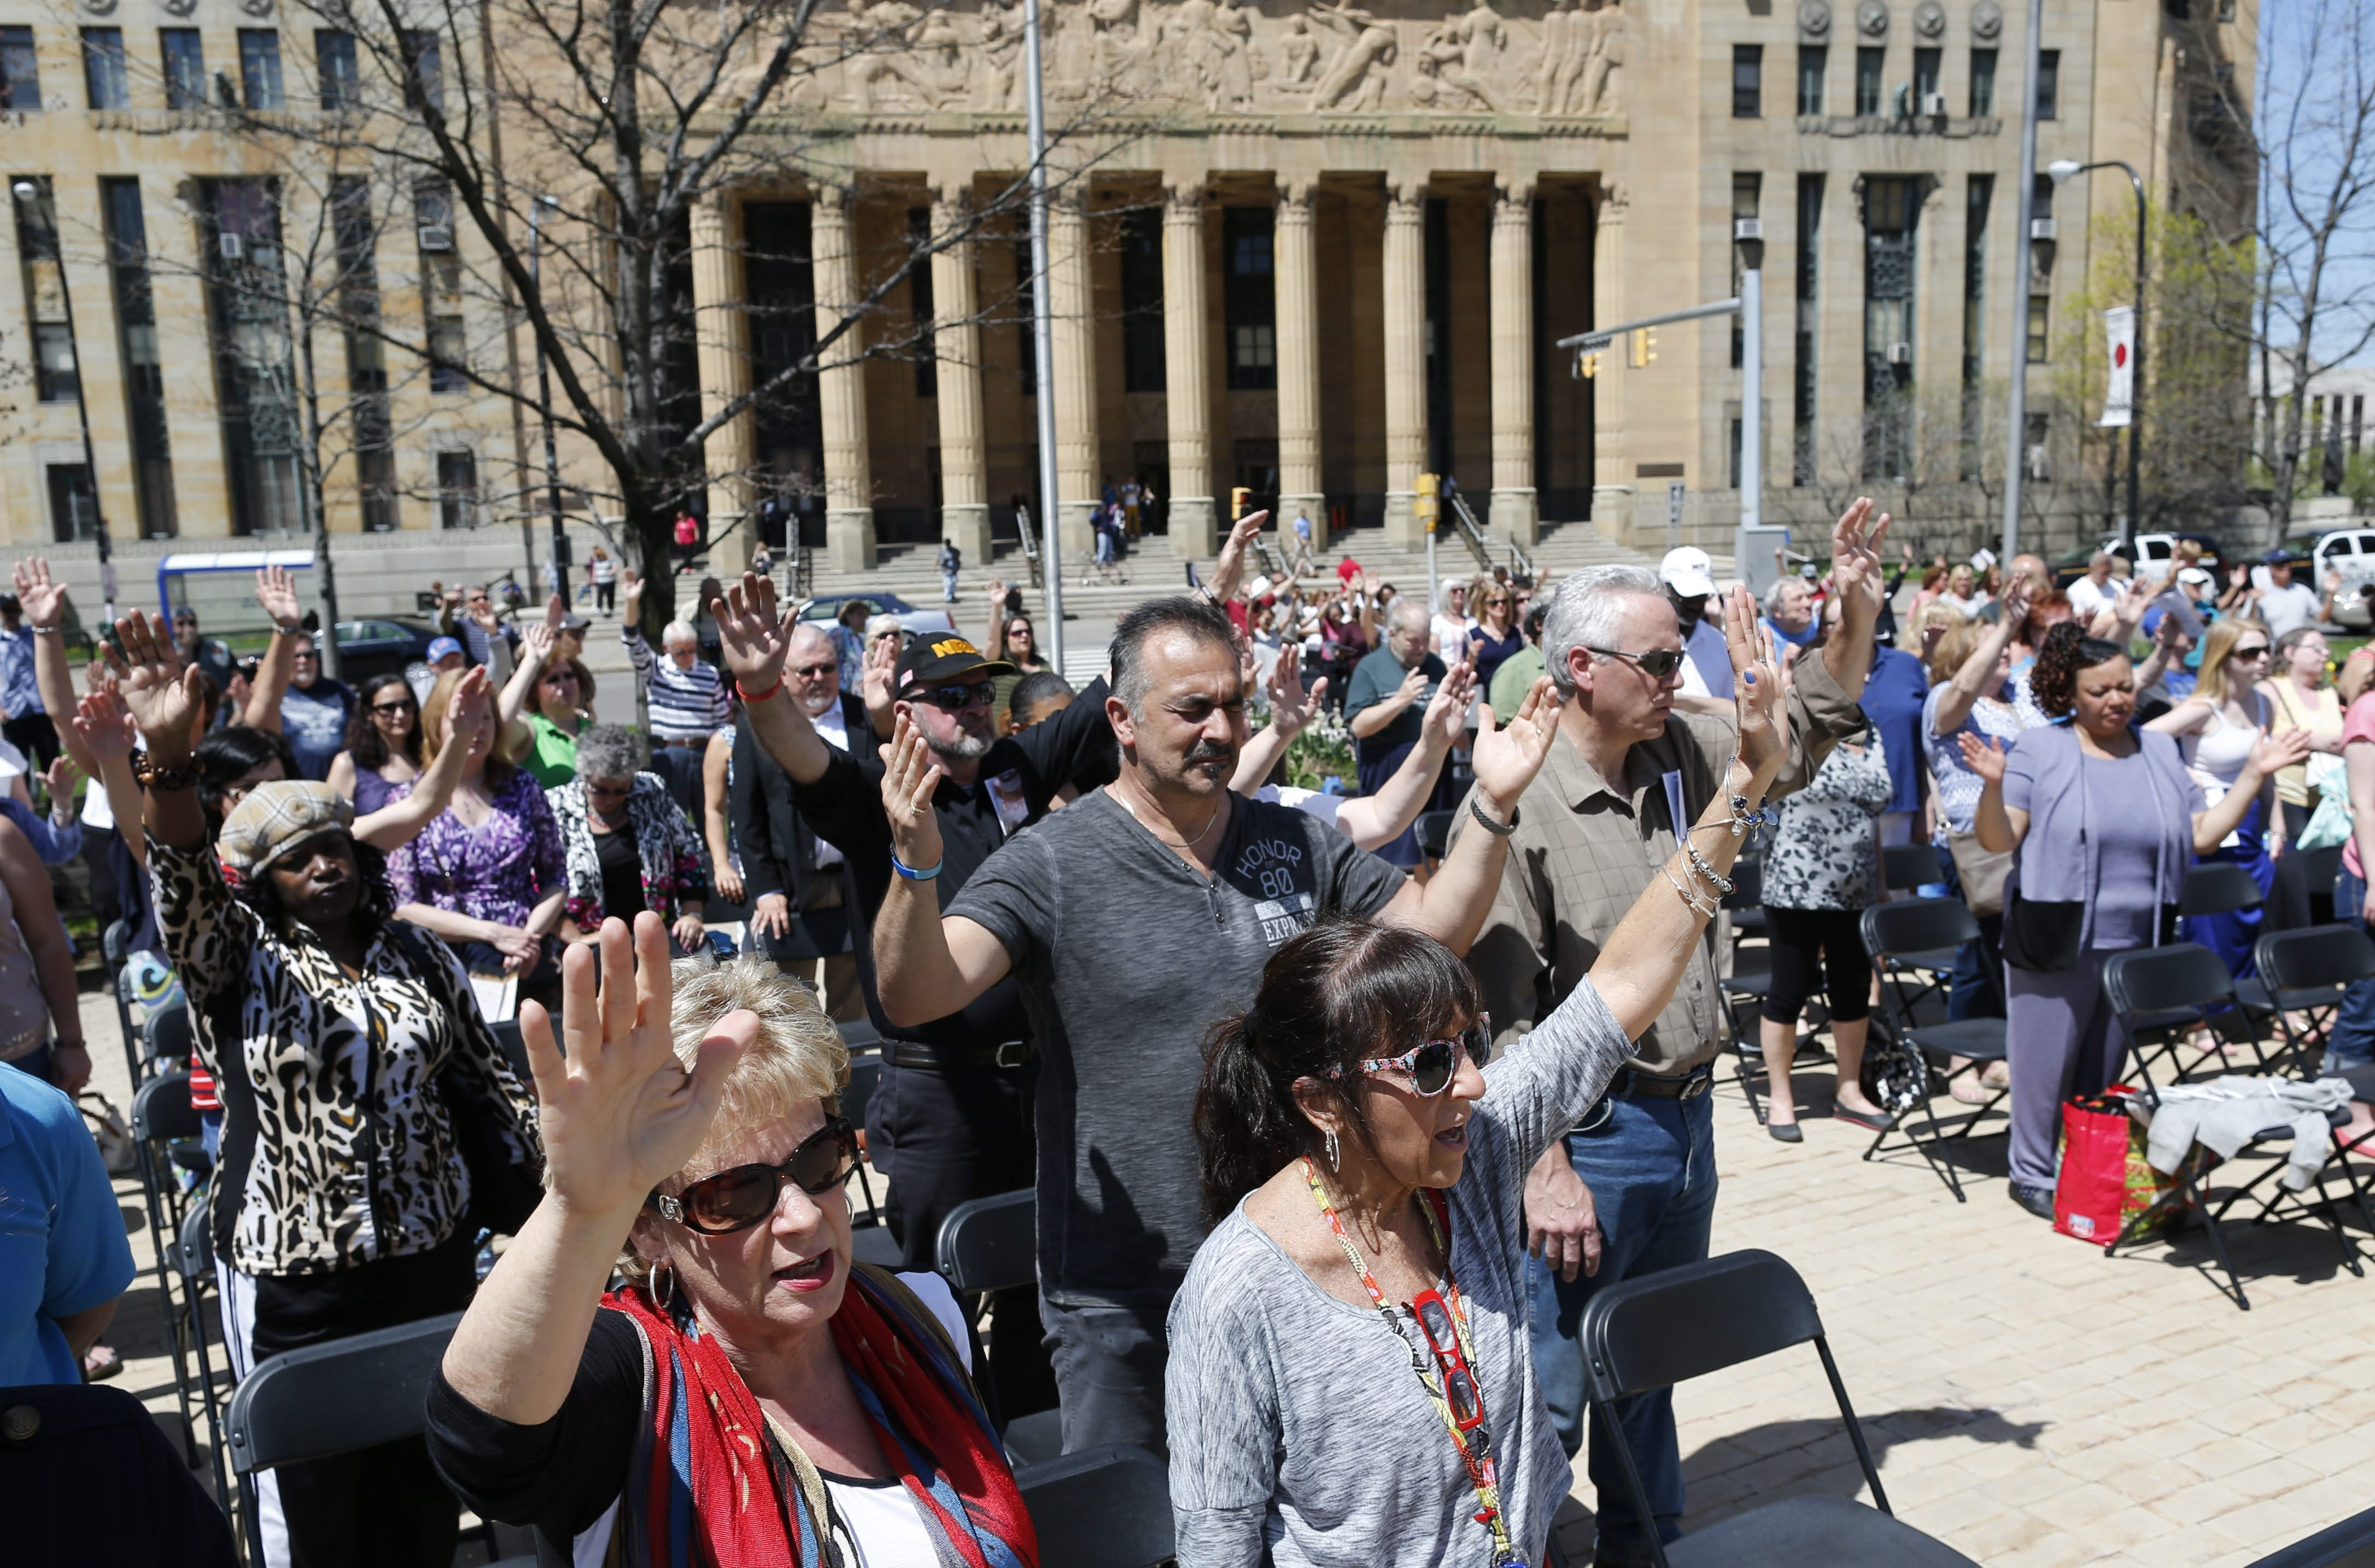 Hundreds of people came to Niagara Square on Thursday to take part in the National Day of Prayer service in Buffalo. In addition to prayer, several speakers offered inspirational messages.